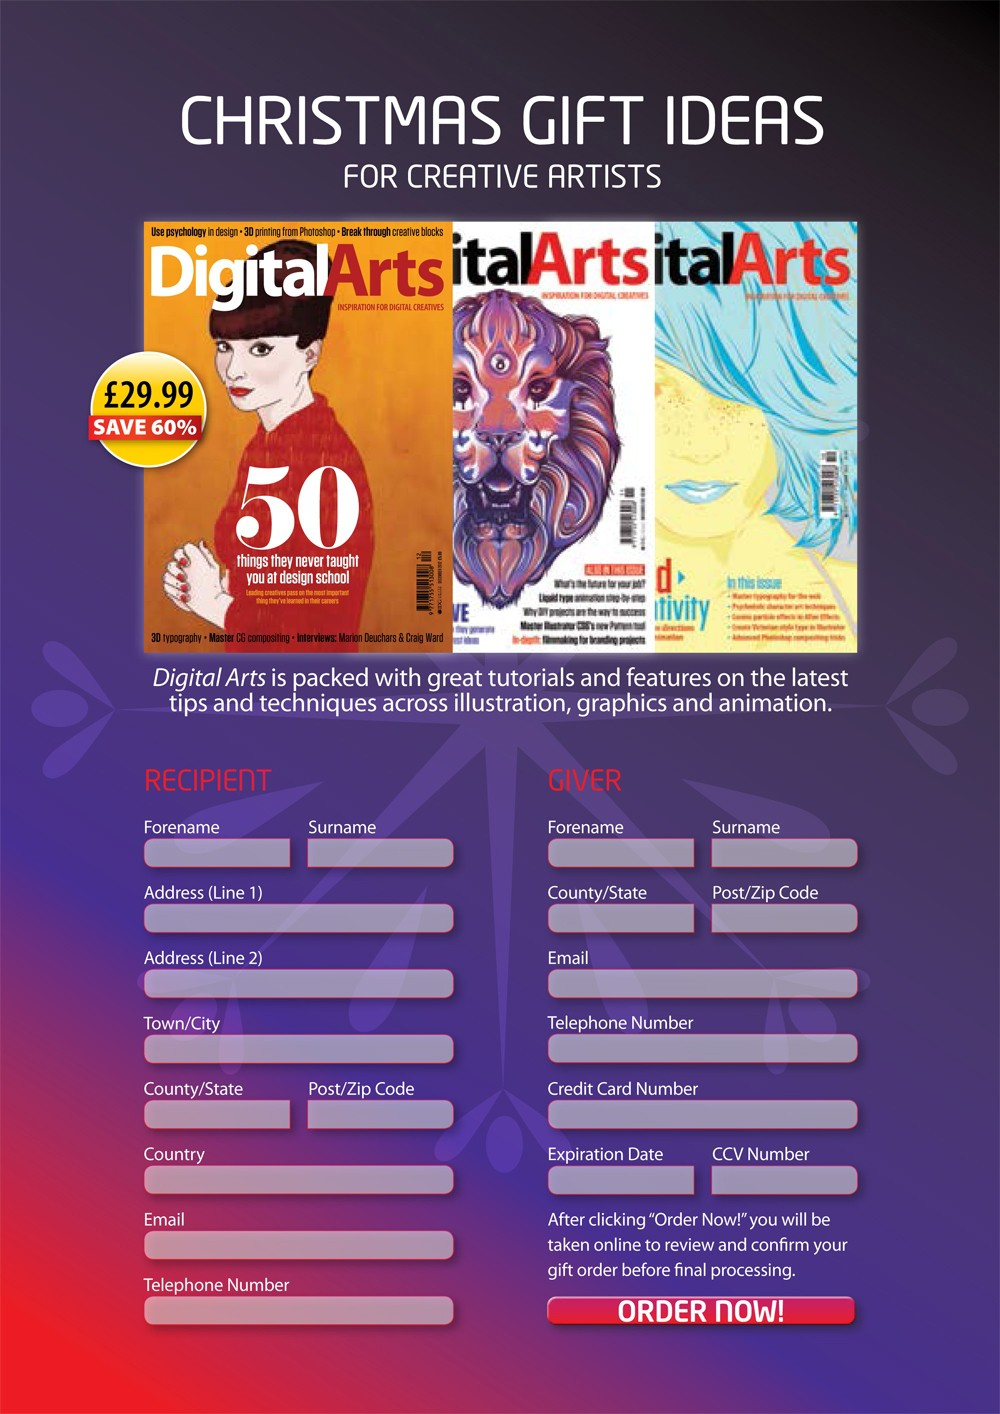 InDesign Tutorial Design An Effective PDF Form Using InDesign CS6 Digital Arts